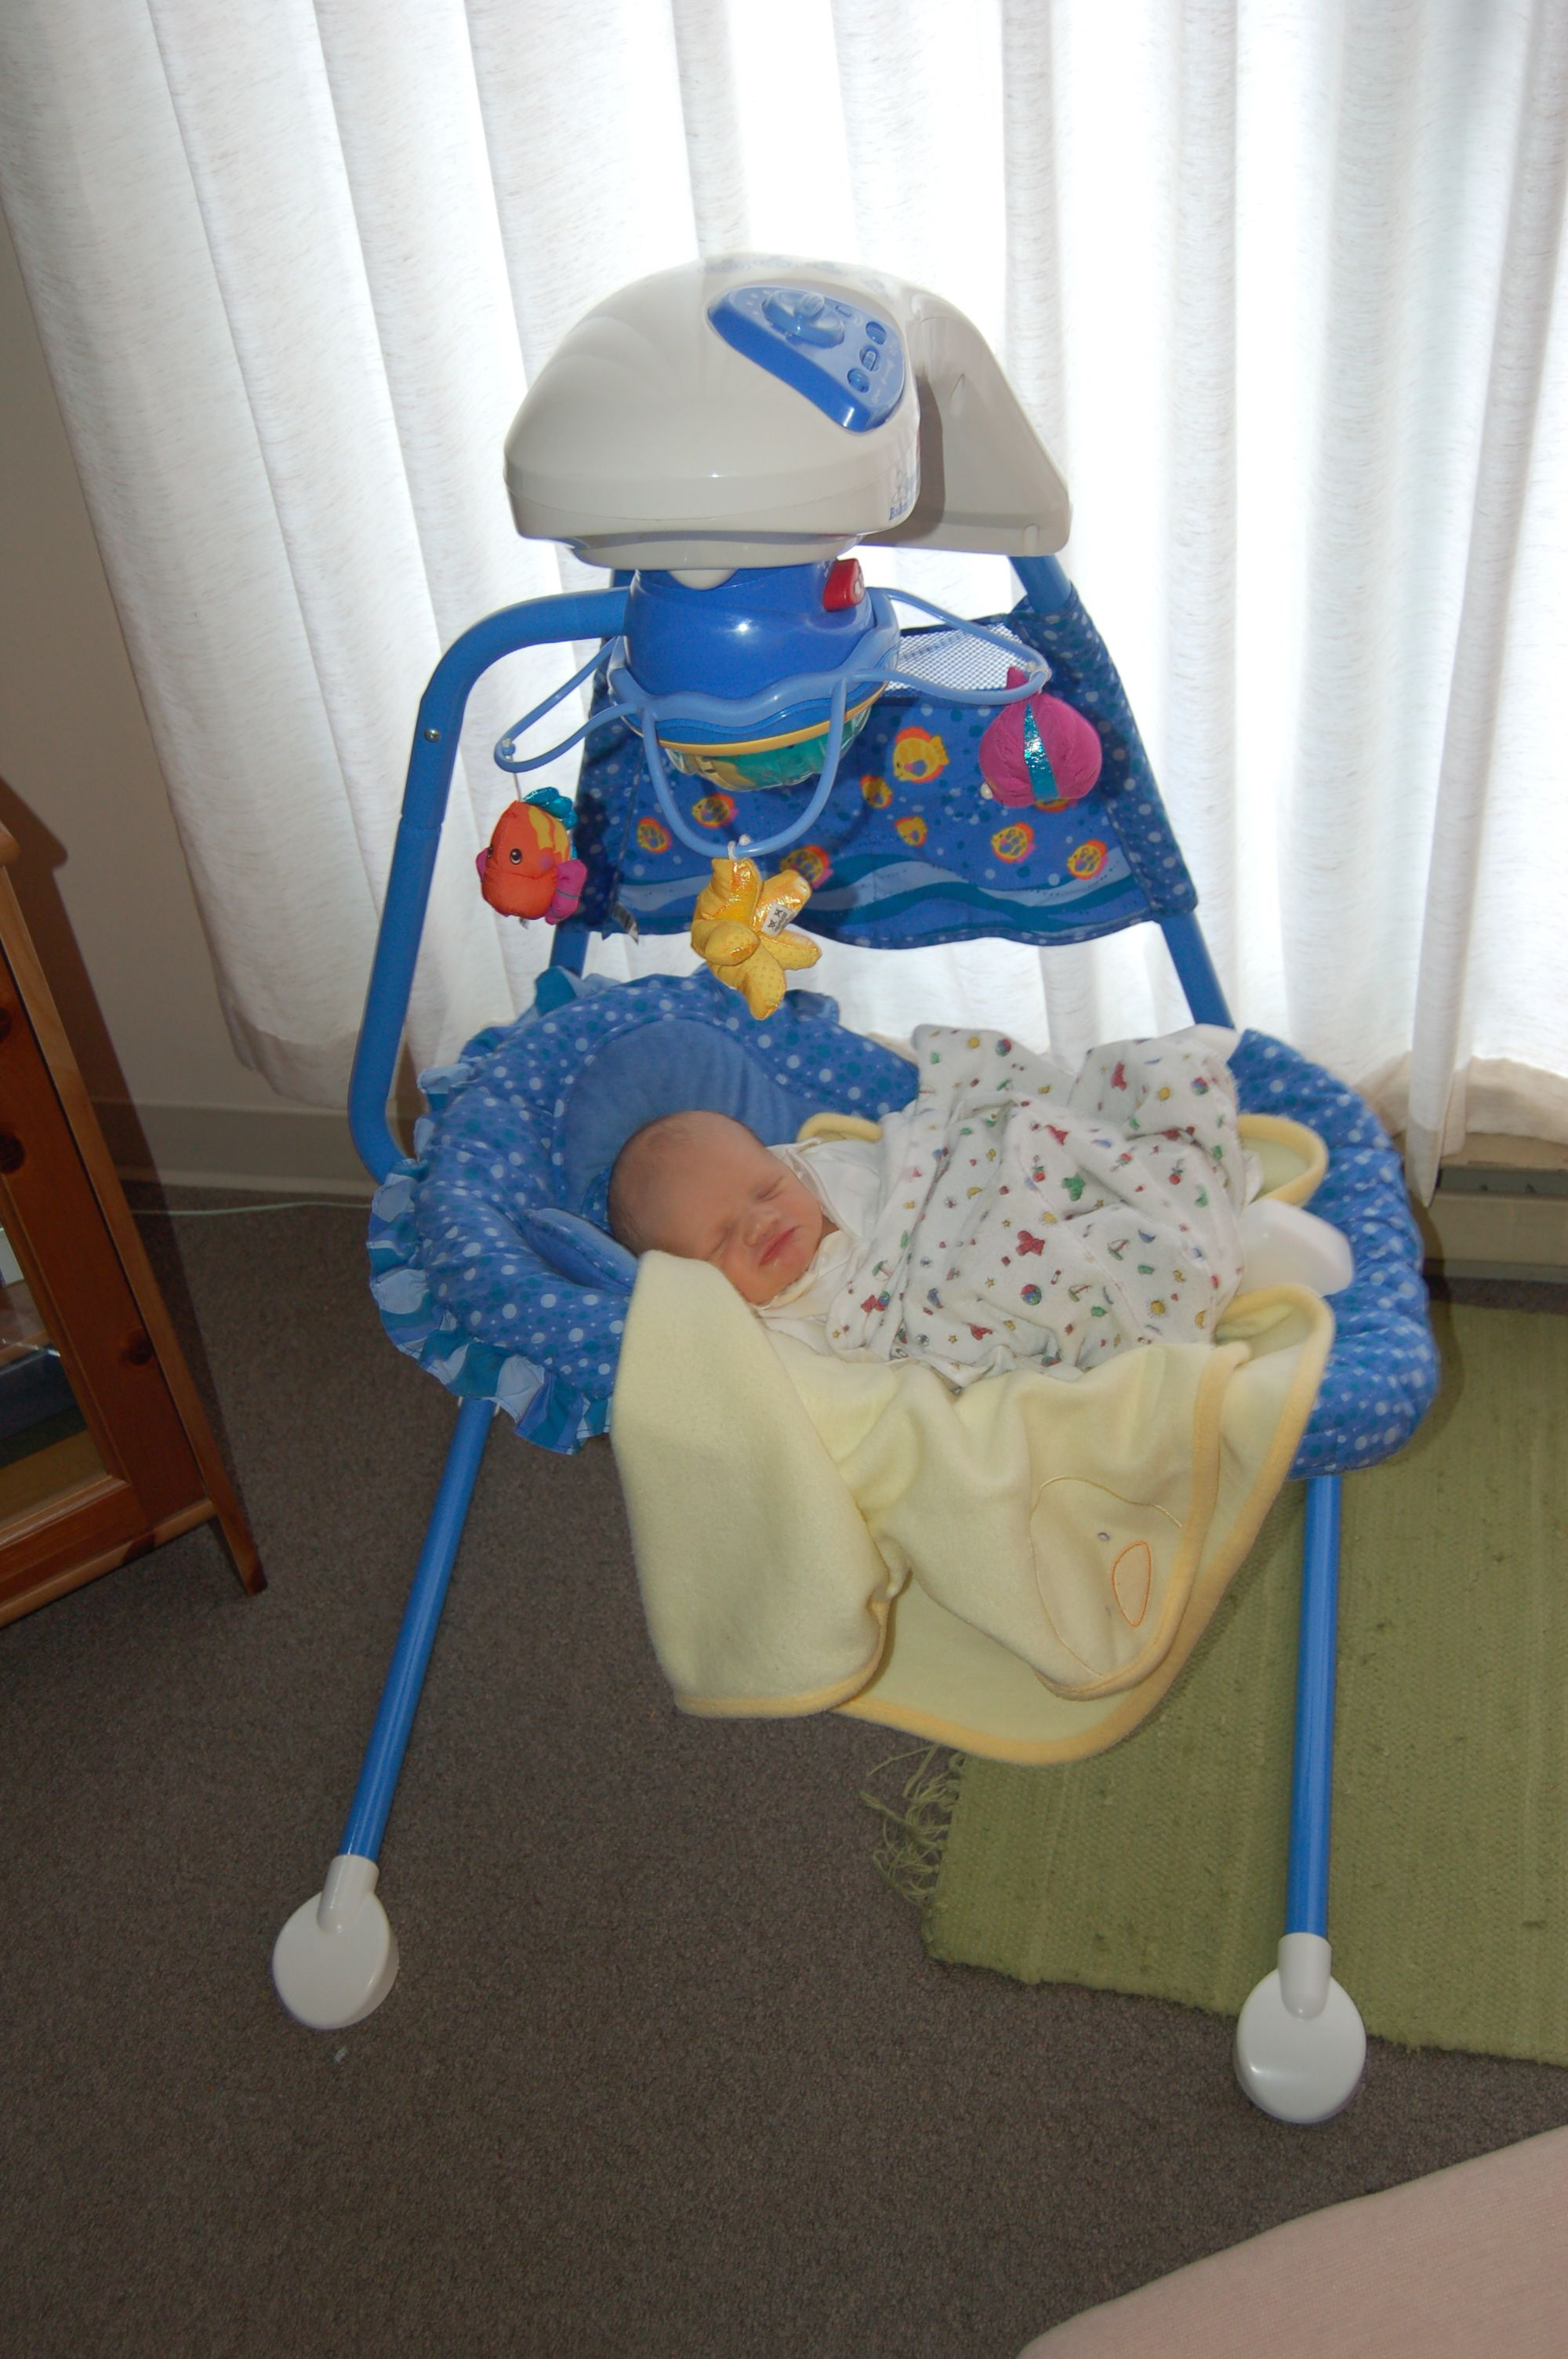 fisher price aquarium cradle swing review the fussy baby site rh thefussybabysite com fisher price aquarium cradle swing instructions manual fisher price aquarium cradle swing instructions manual